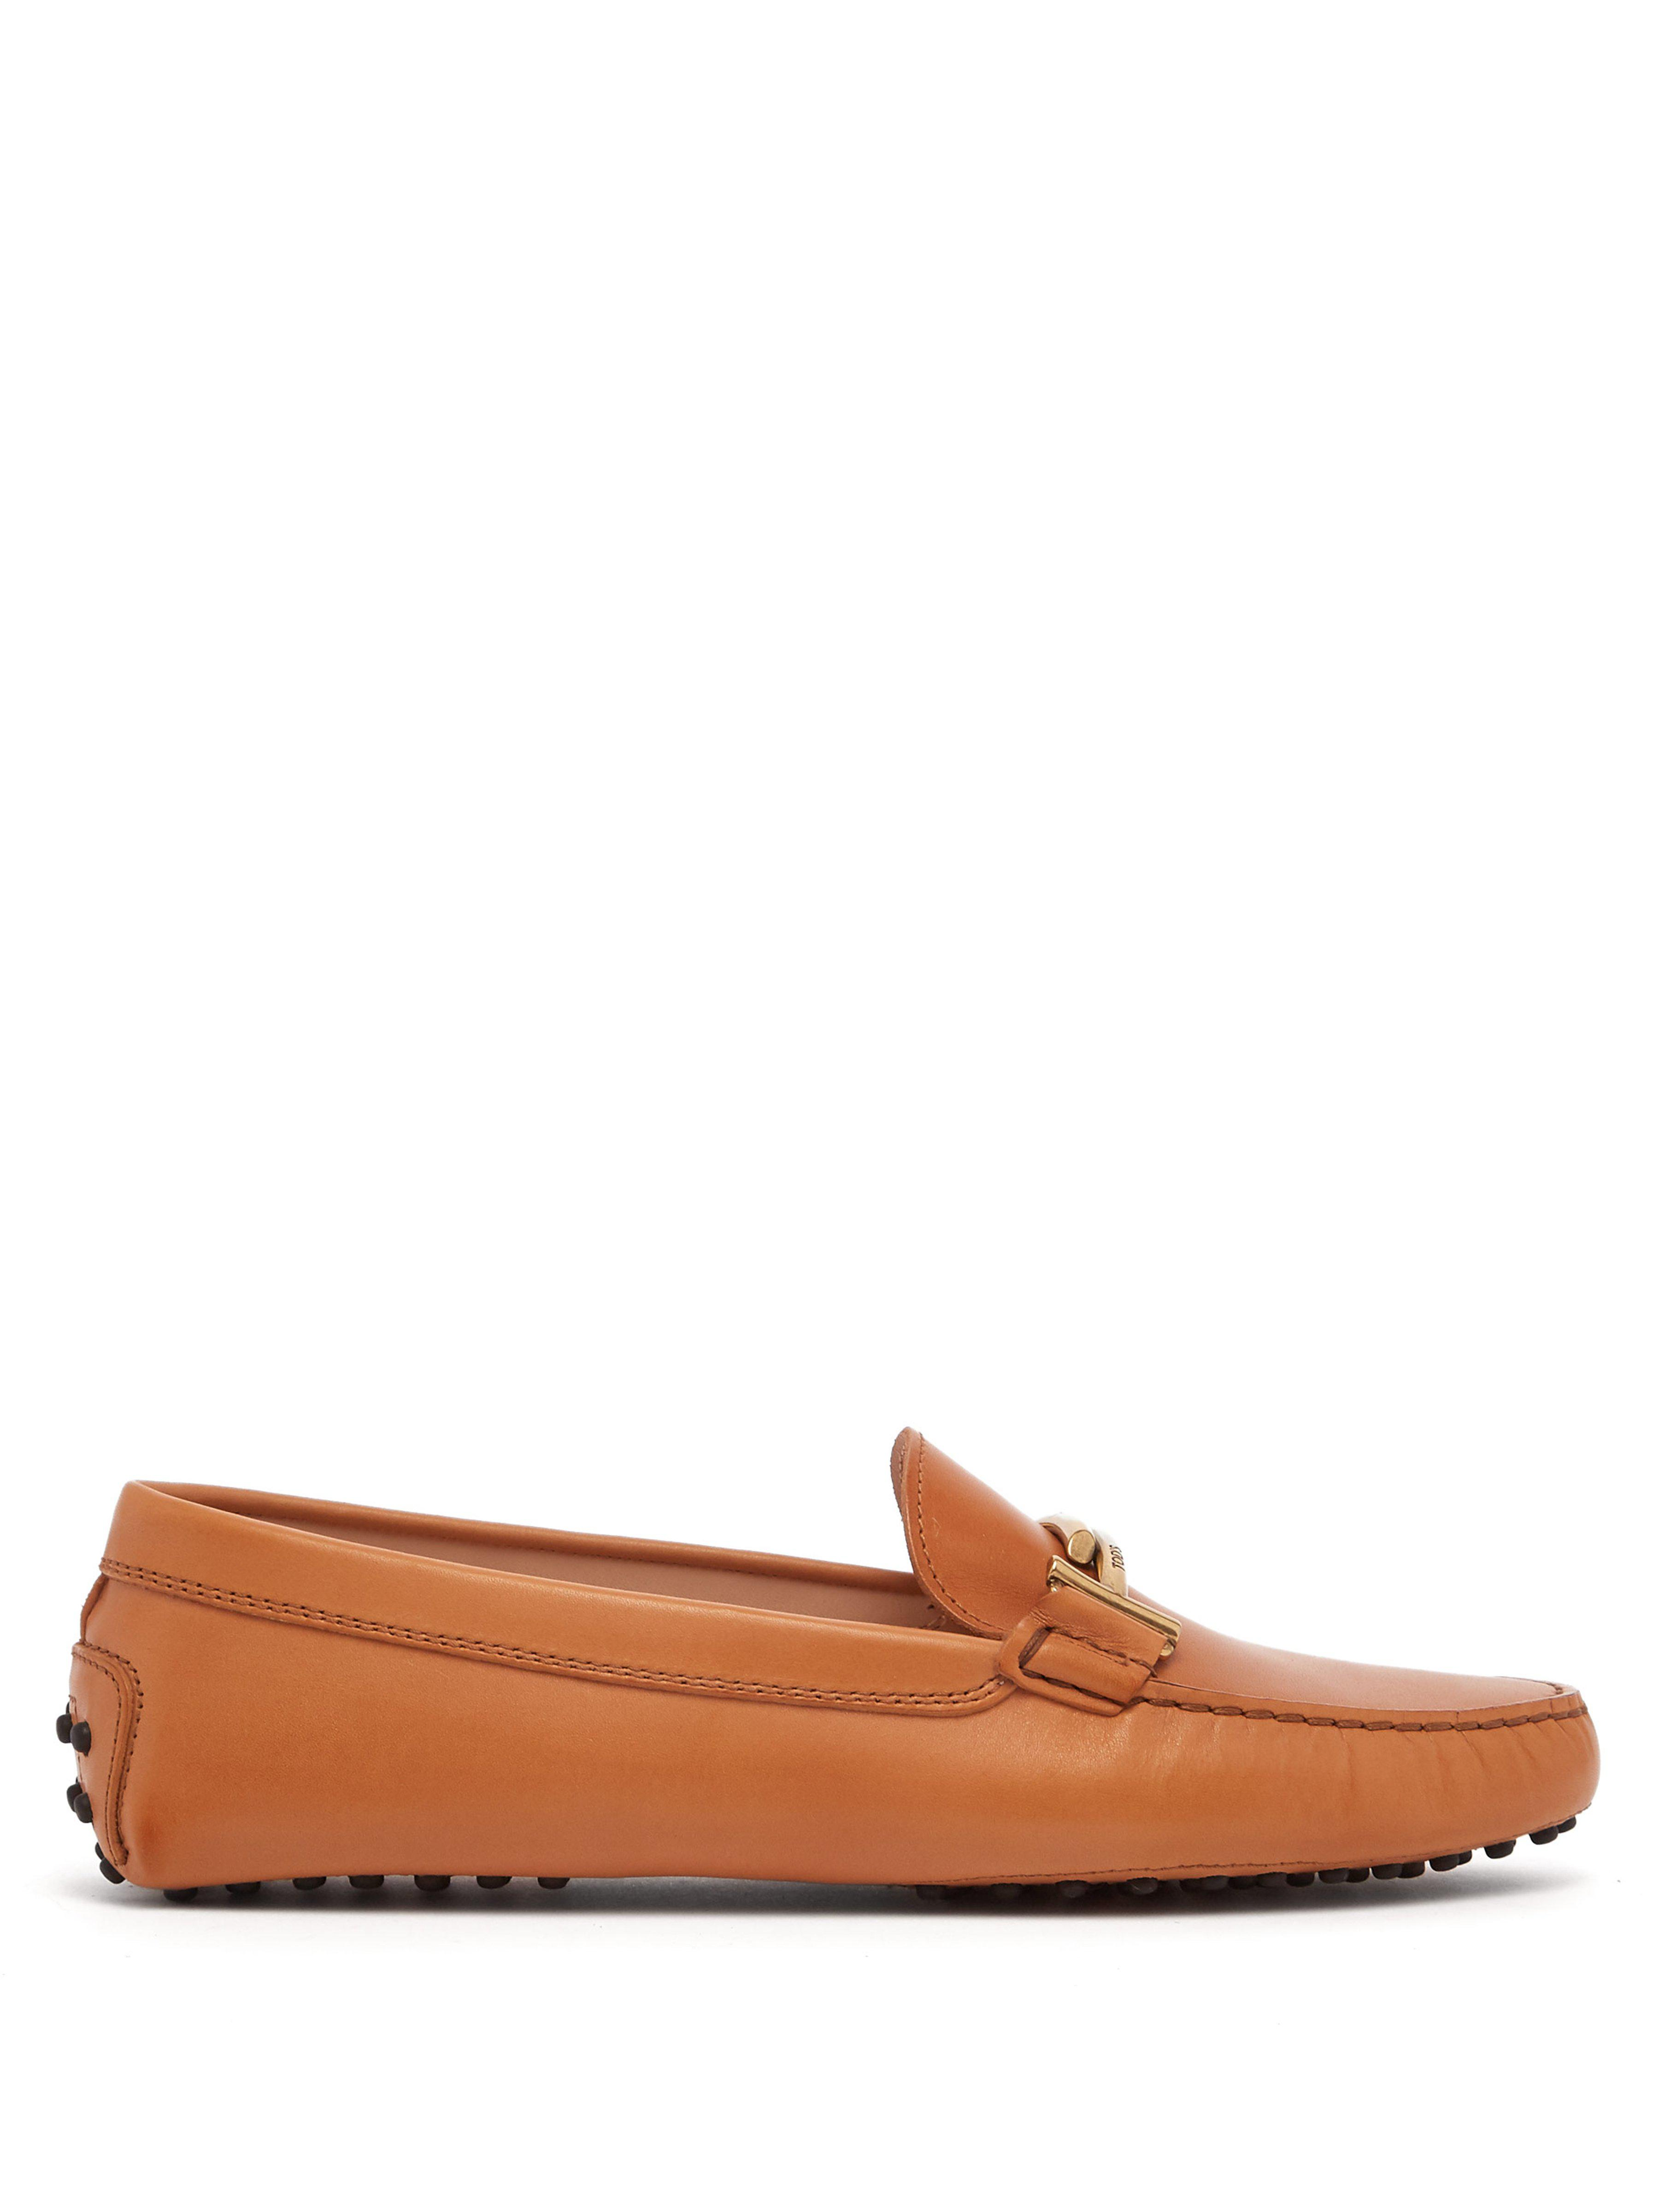 379d318c686 Tod S Gommino Double T Leather Loafer in Brown - Lyst